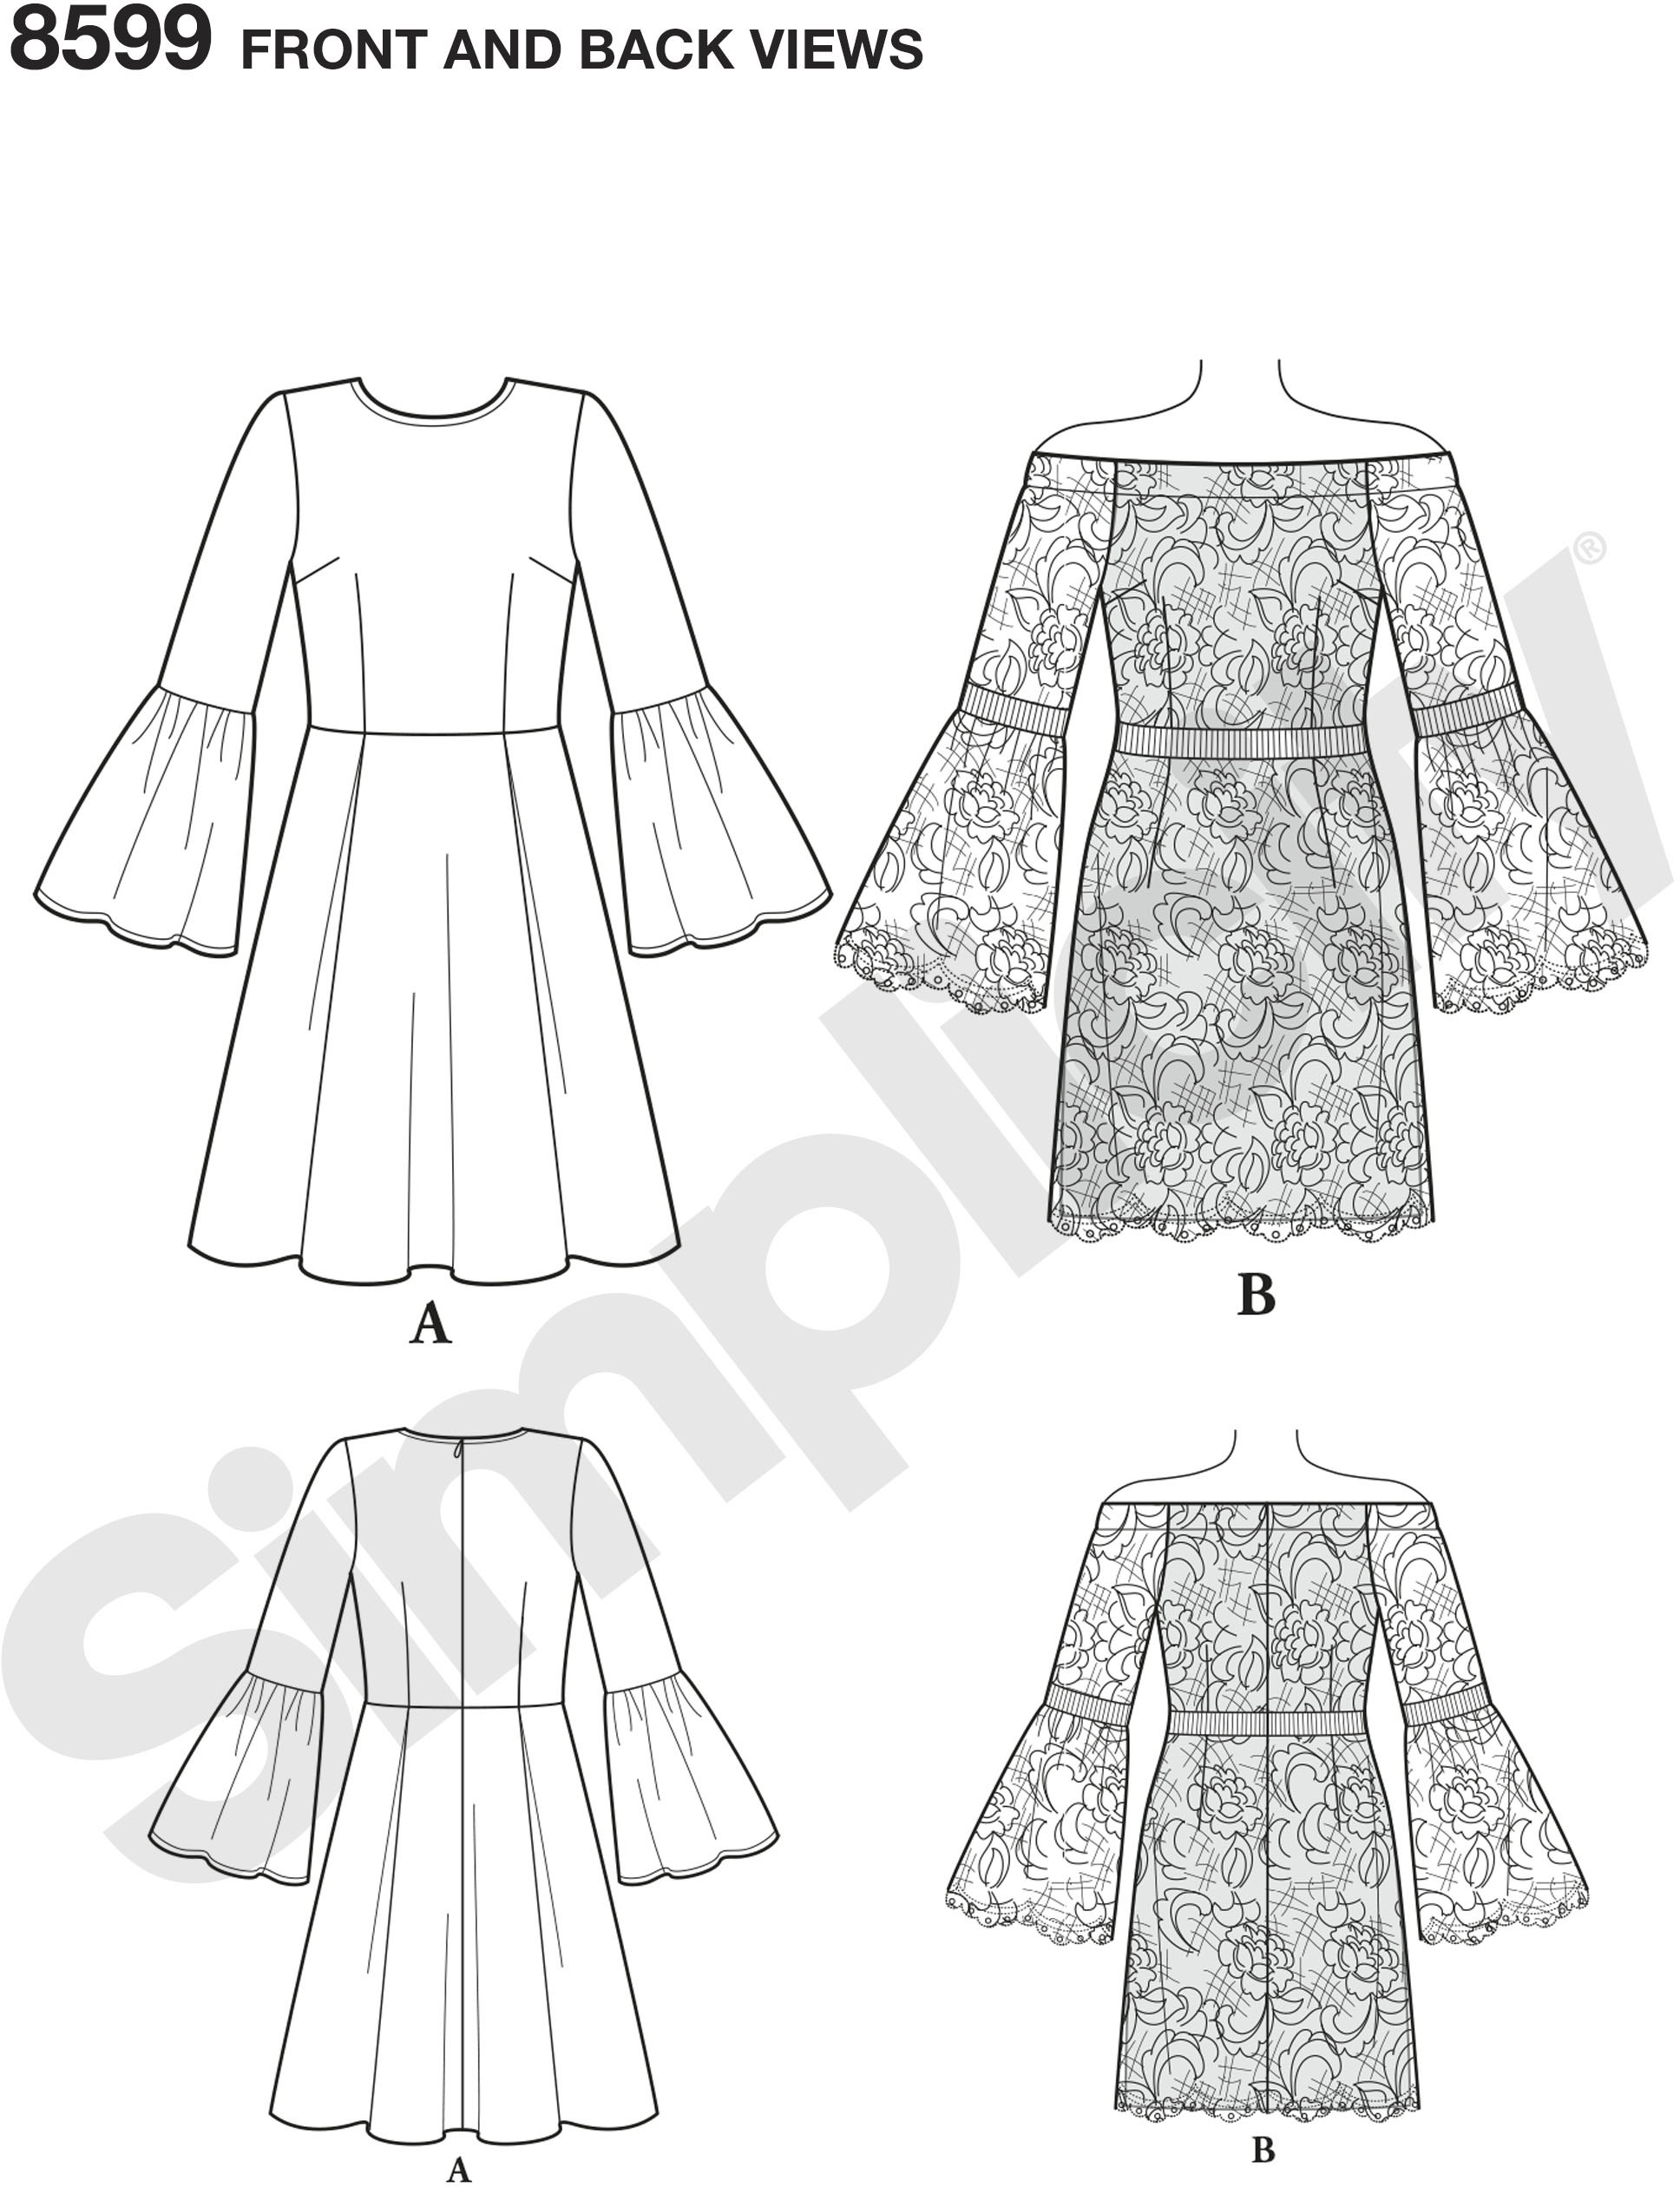 Create the perfect day-to-evening dresses with this sewing pattern for Misses and Petites designed by Cynthia Rowley.